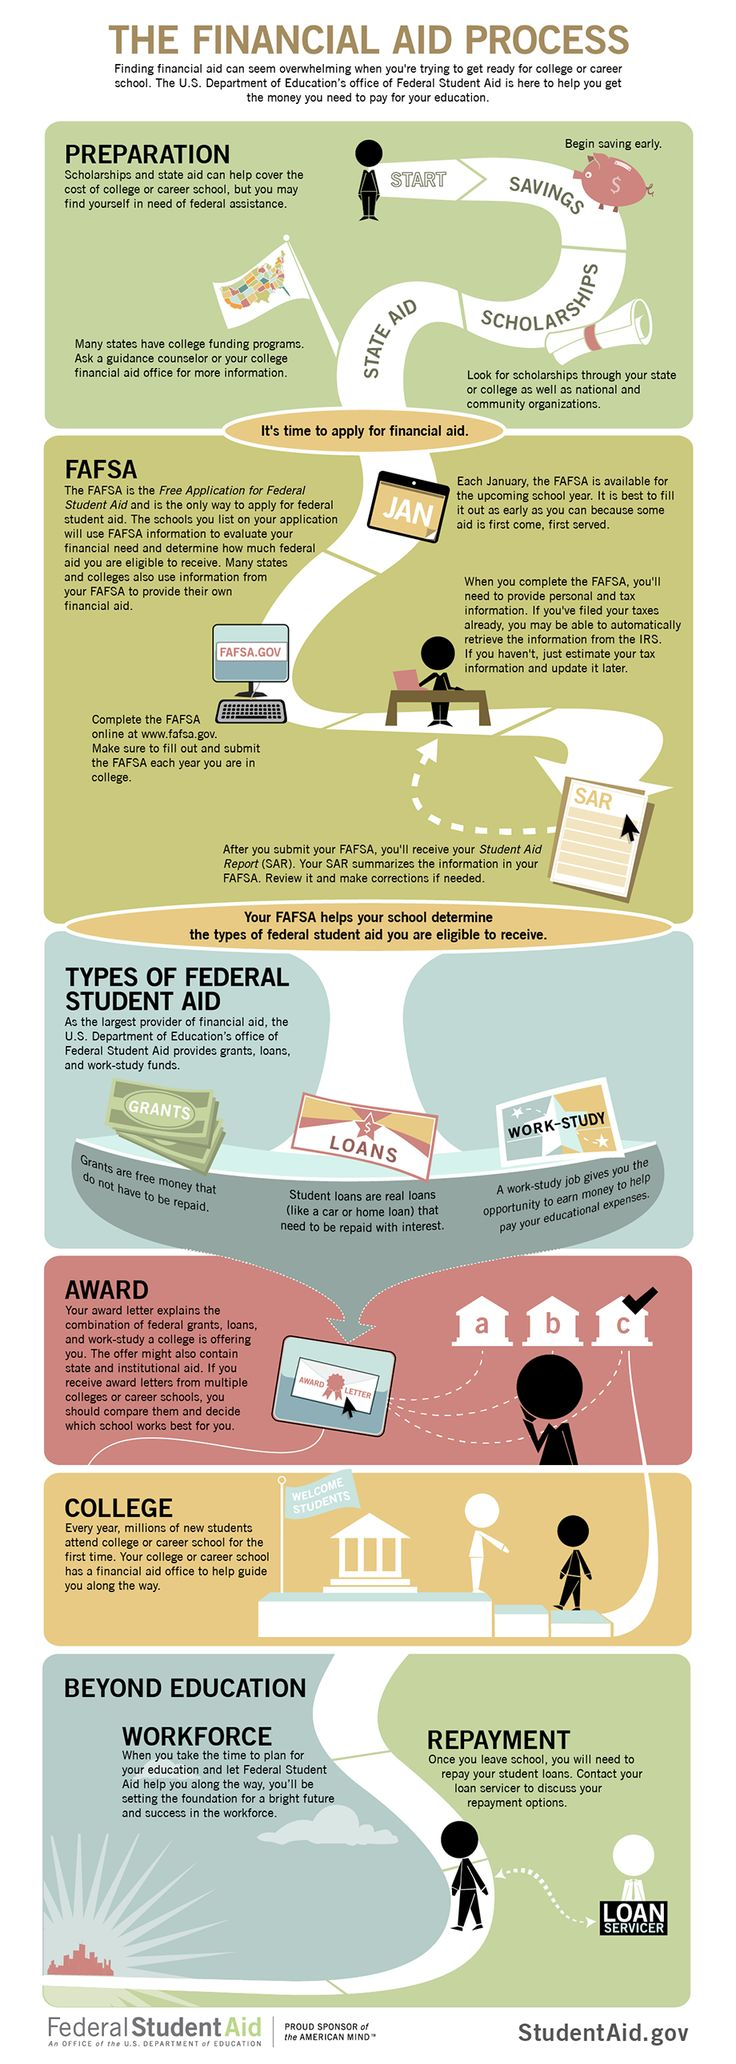 Federal Student Aid. This is a link to the federal student aid website and has all sorts of information on how to prepare for college such as a check list broken down by grade. This page also touches on what it takes to get federal student aid.